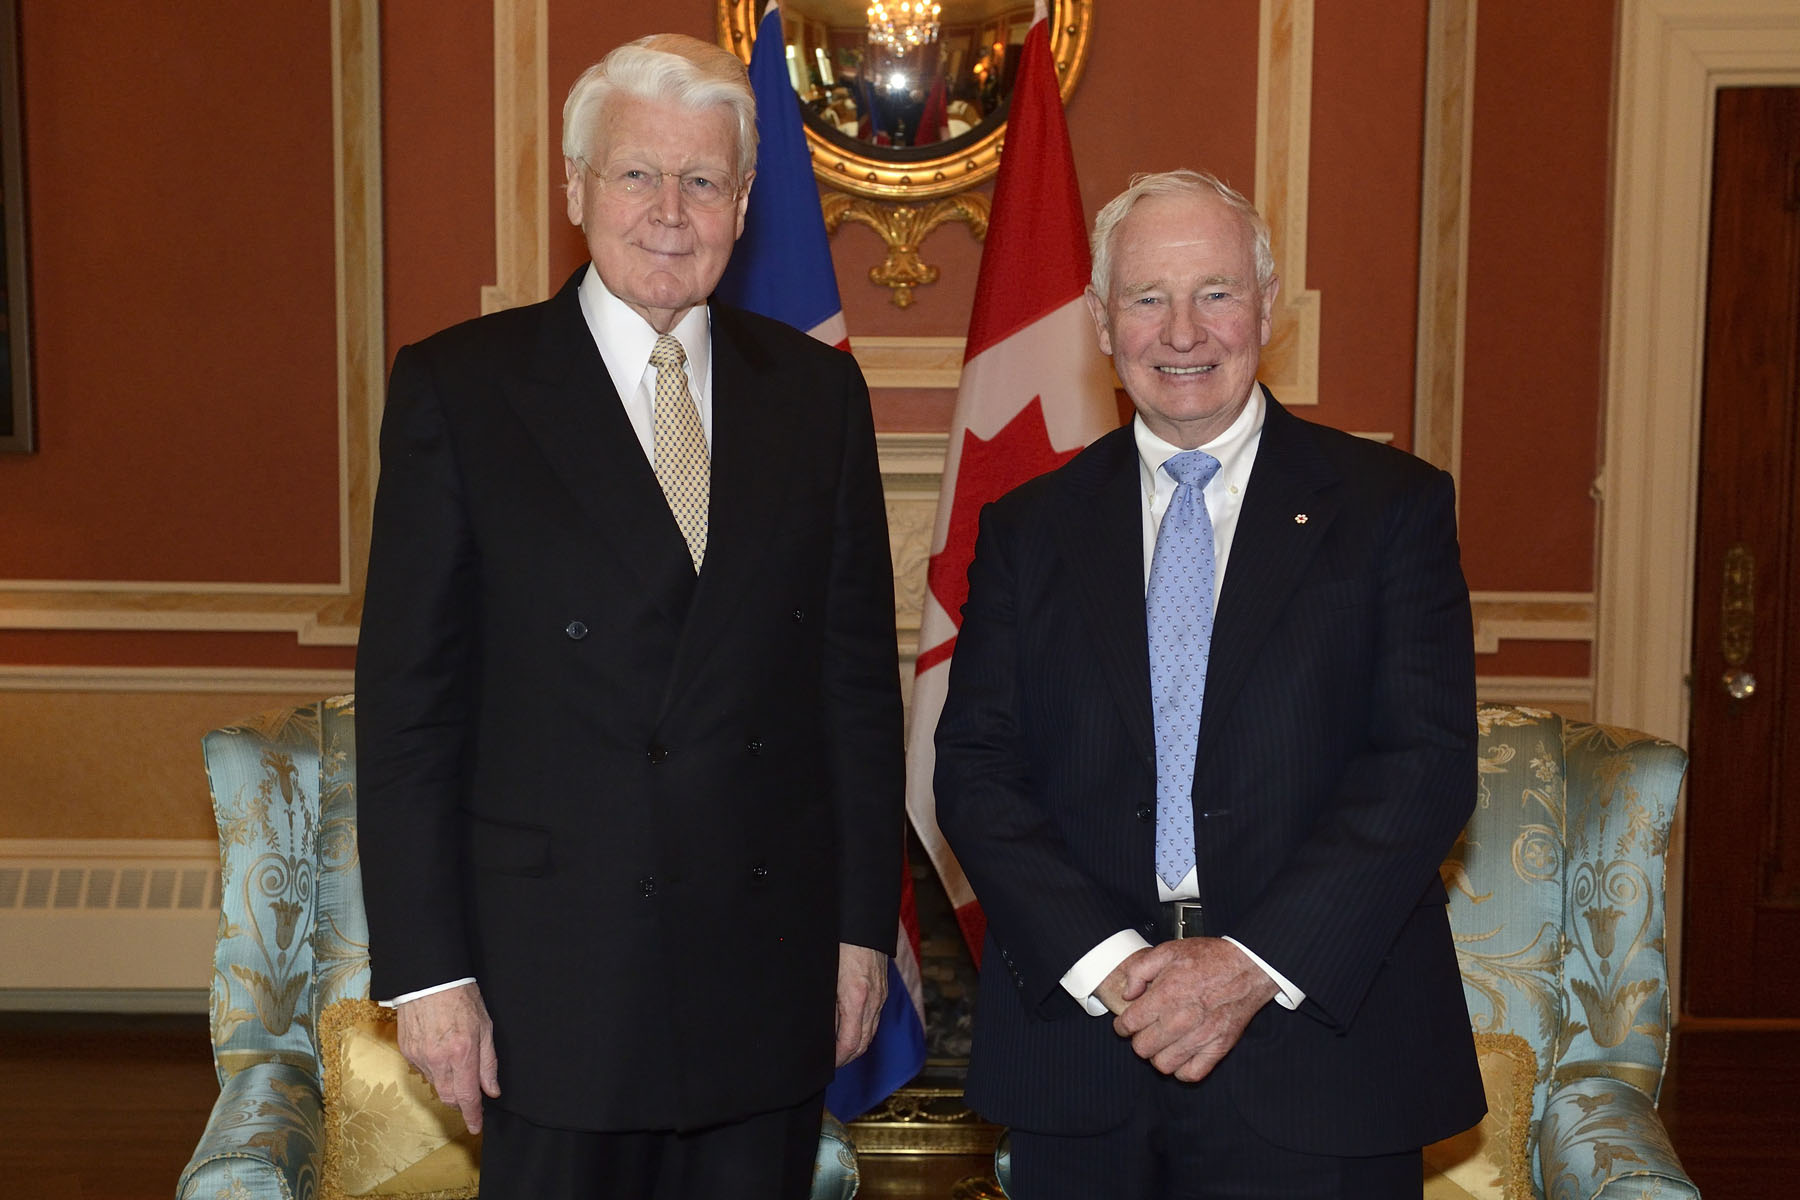 His Excellency the Right Honourable David Johnston, Governor General of Canada, met with His Excellency Dr. Ólafur R. Grímsson, President of the Republic of Iceland, at Rideau Hall.